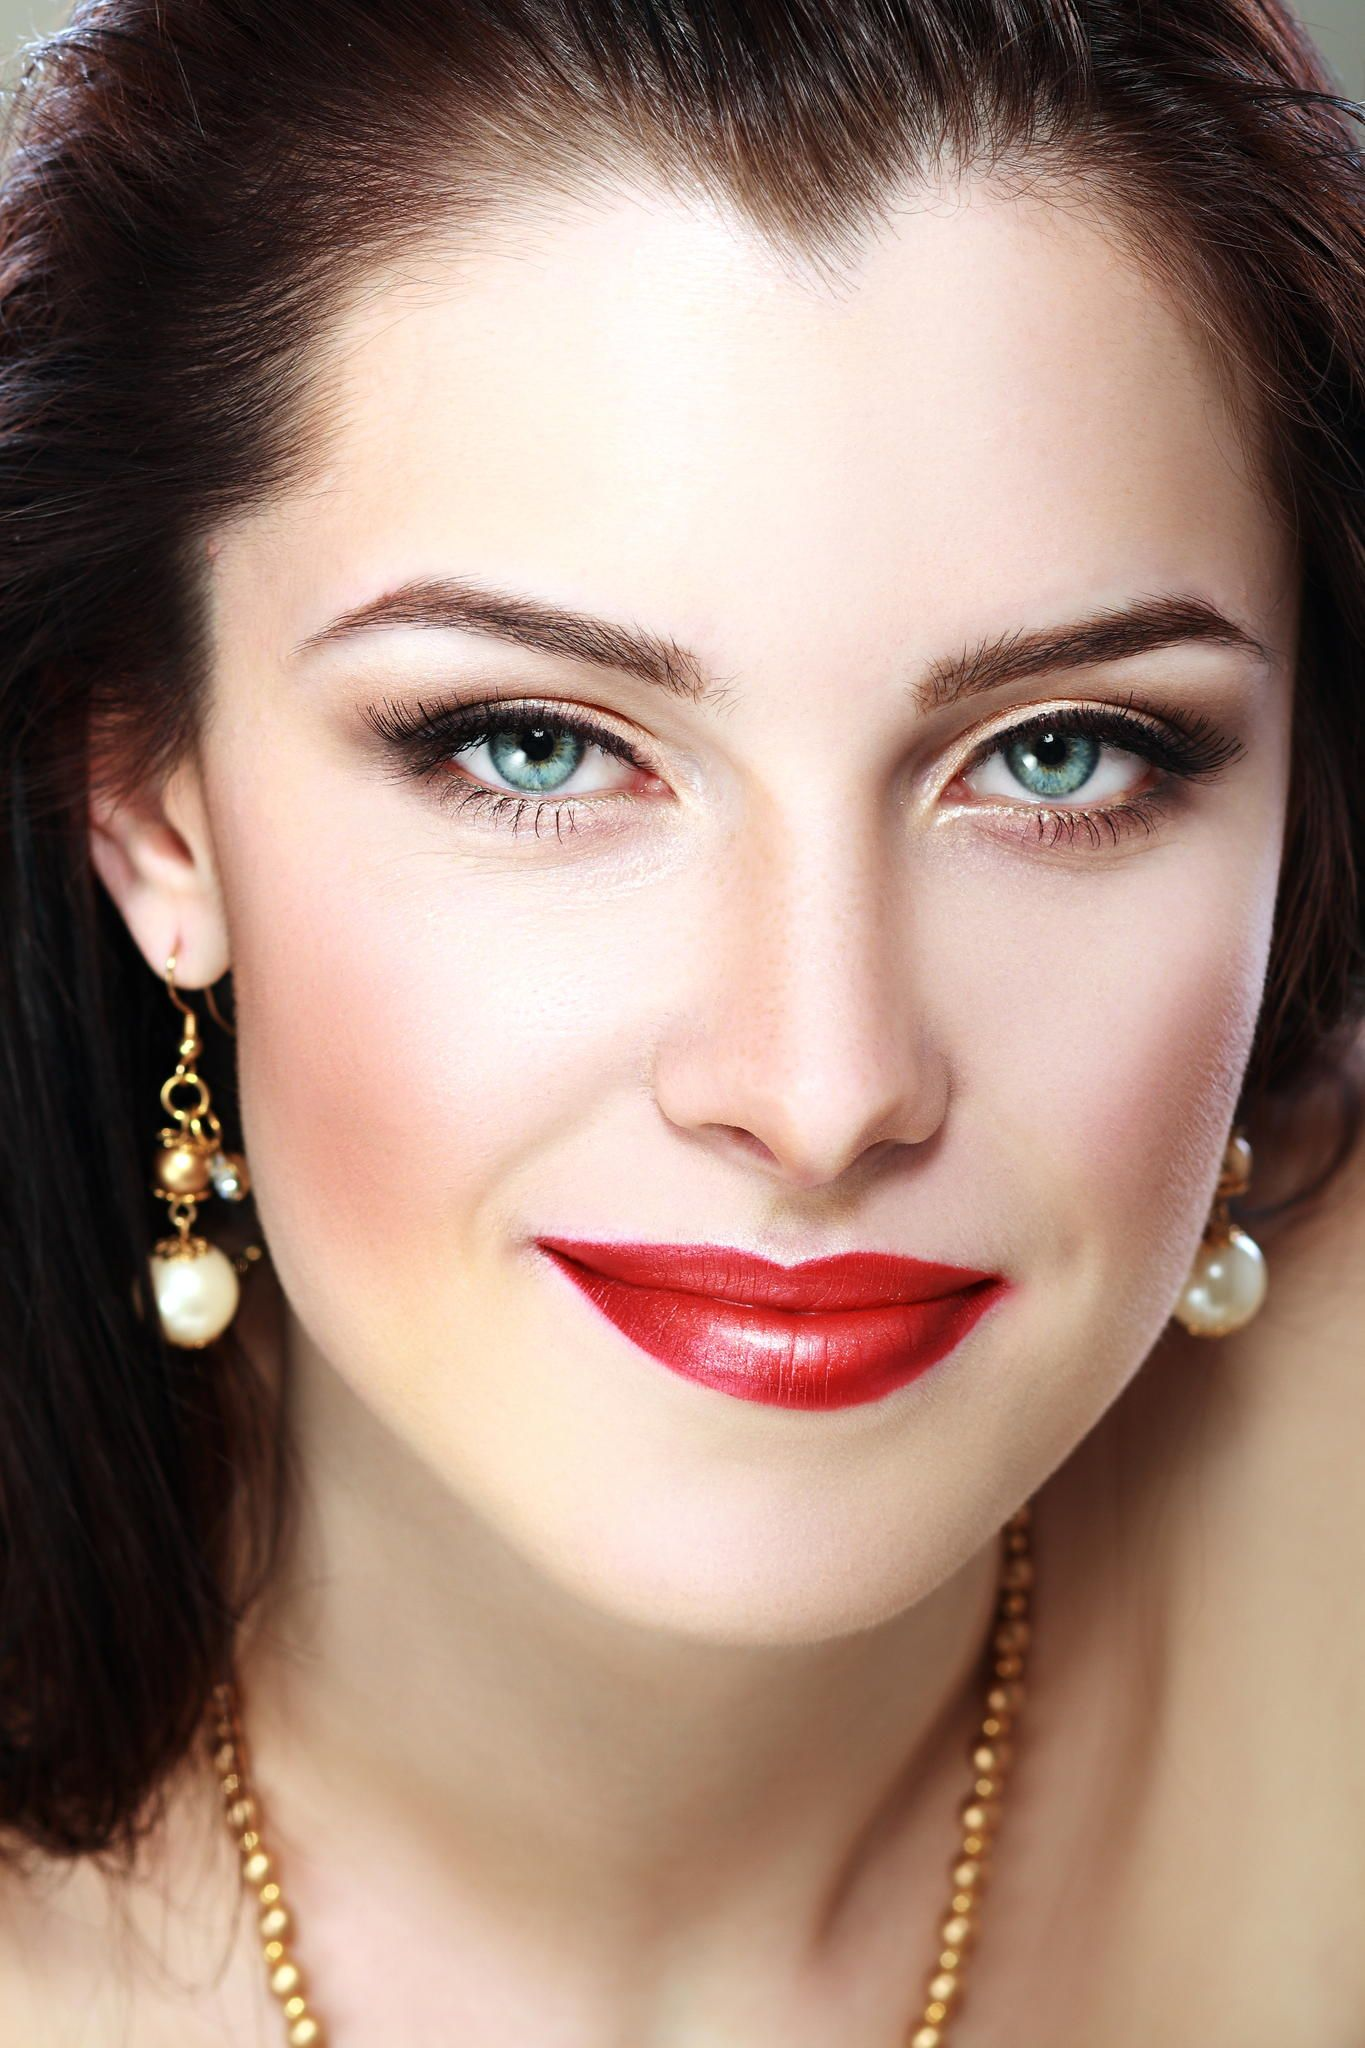 Amadea dashurie: Most Beautiful Lipstick Tutorial Truly ...